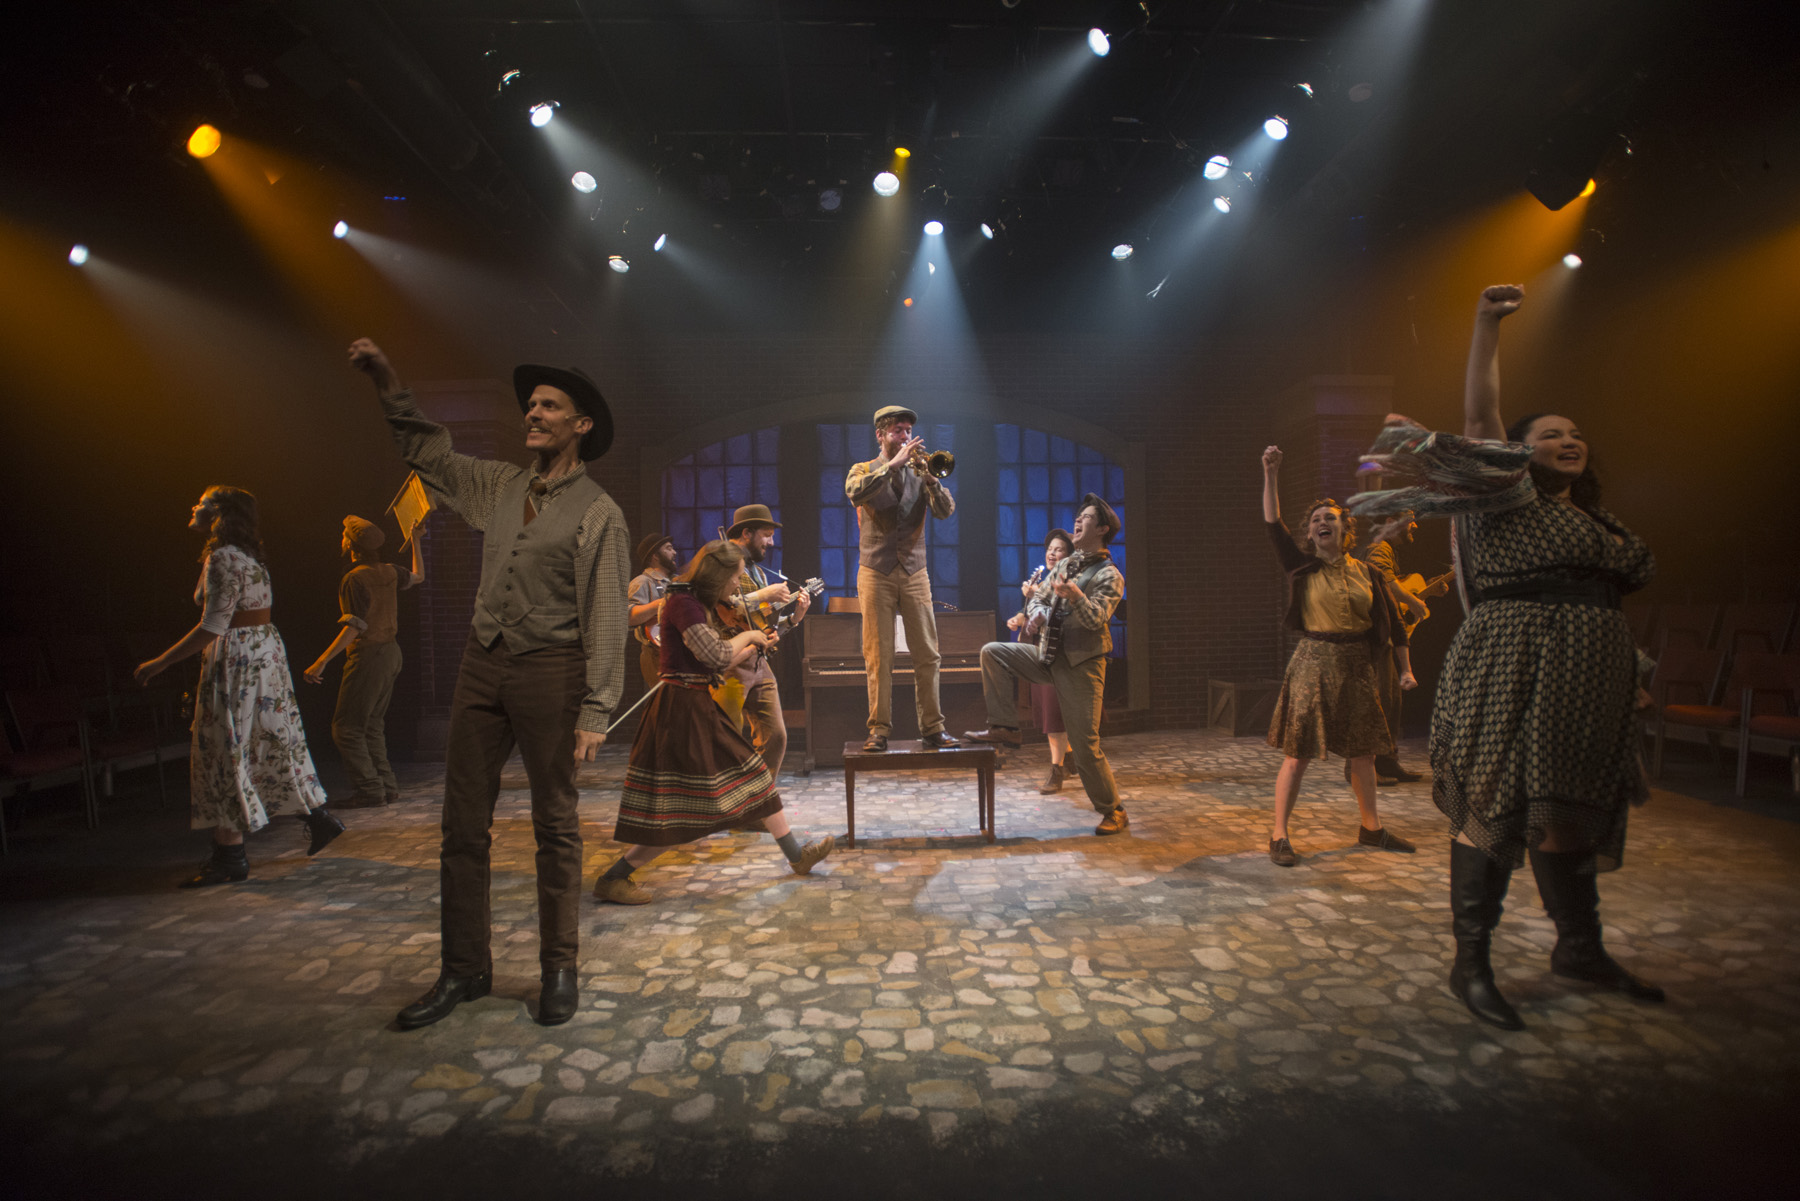 (left to right)  Amanda Giles ,  Joey Harbert ,  Erik Pearson ,  Eric Loughlin, Elleon Dobias ,  Mike Mazzocca ,  T.J. Anderson ,  Sarah Beth Tanner ,  Kelan M. Smith ,  Melanie Vitaterna ,  Josiah Robinson  and  Bridget Adams-King  in  Underscore Theatre Company  and  The Den Theatre's  new musical  HAYMARKET . Photo by Michael Brosilow.